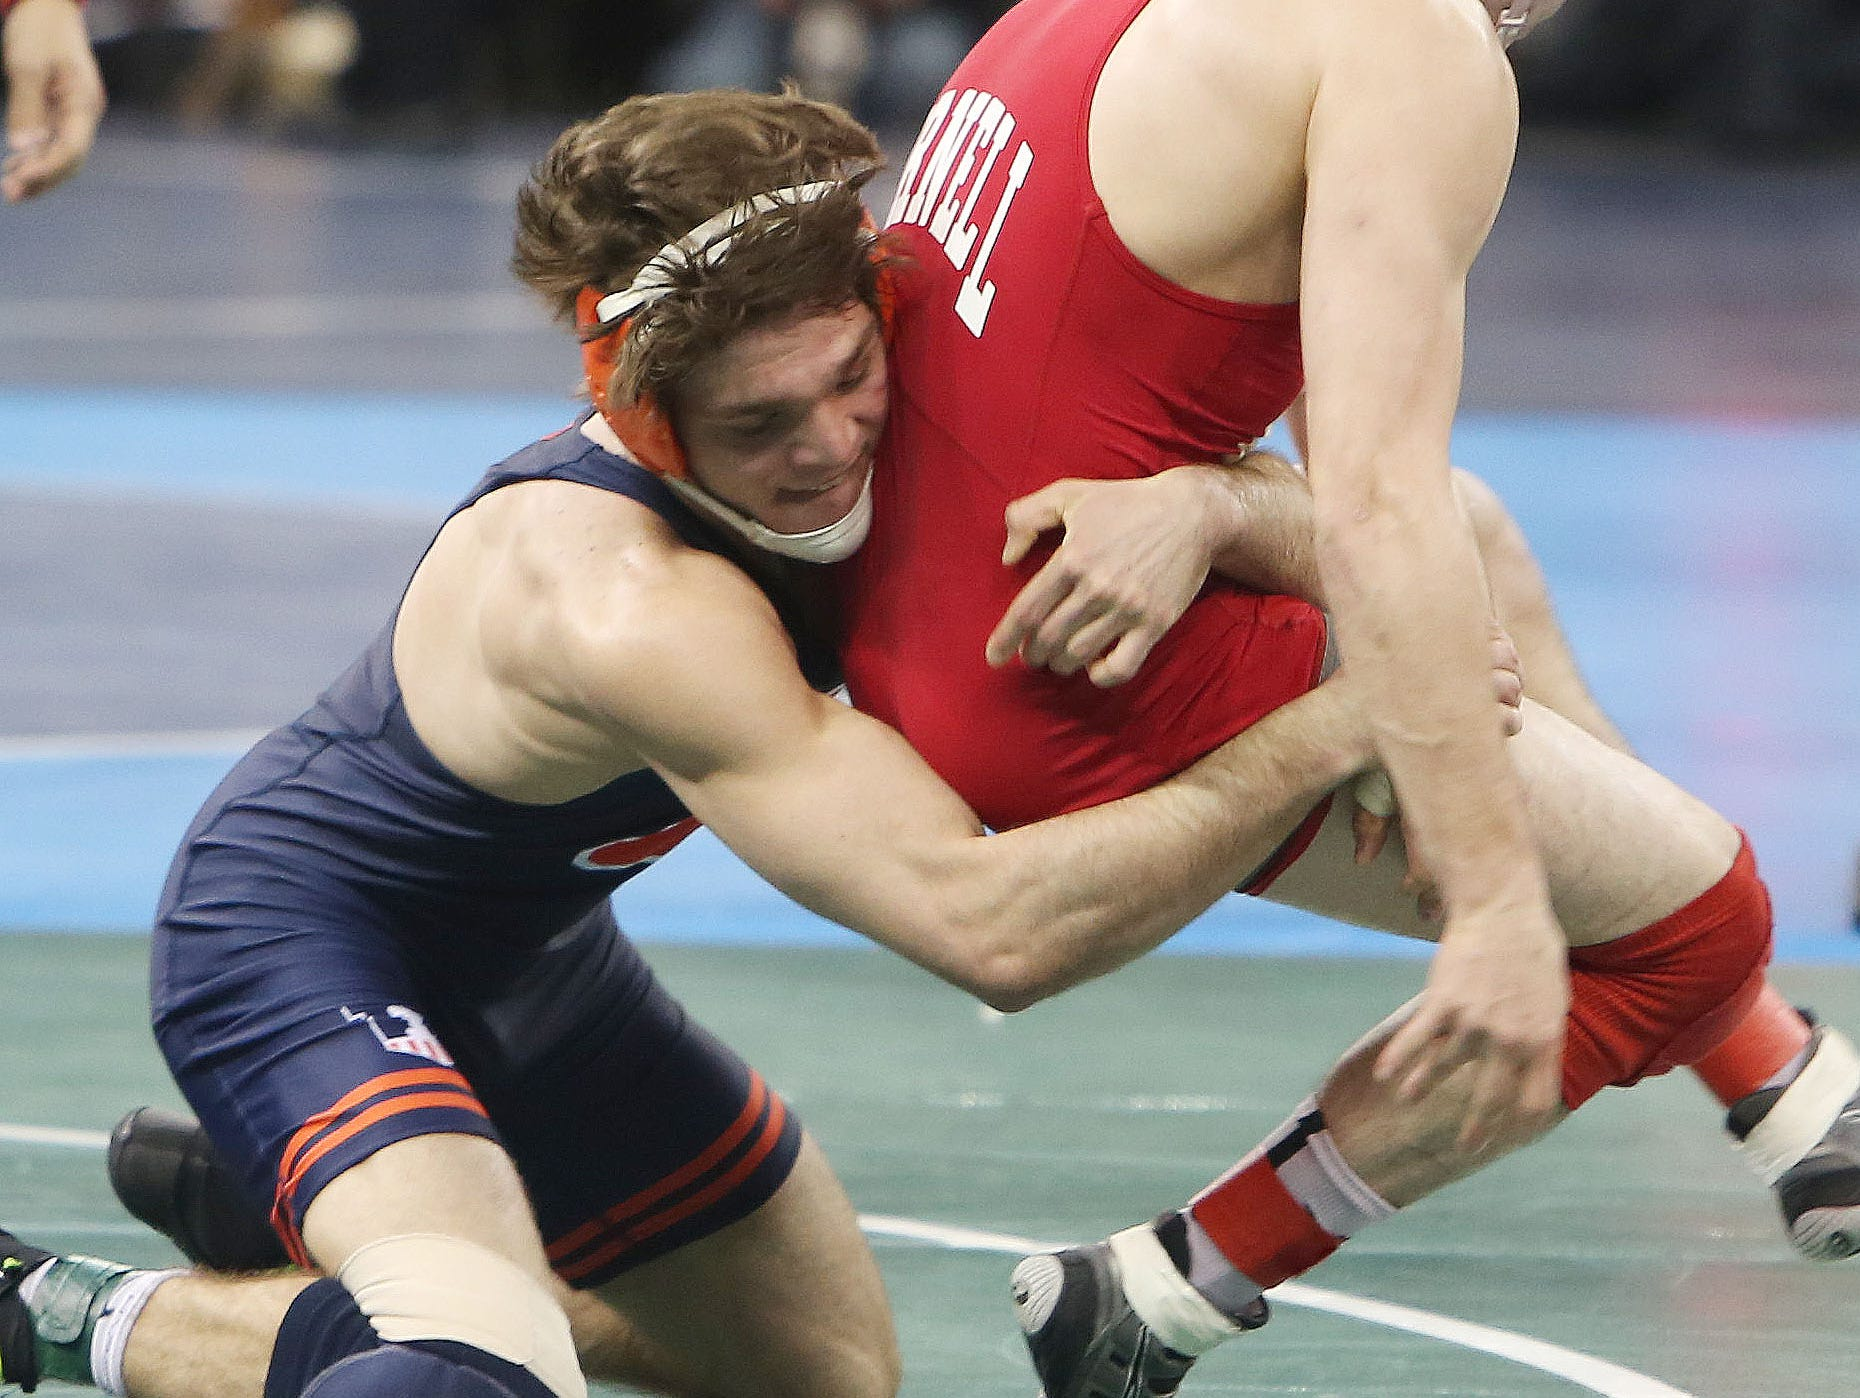 From left , Illinois' Steven Rodrigues on his way to defeating Cornell's George Pickett in the quarterfinals of the 165-pound weight class during the NCAA Wrestling Championships at Madison Square Garden March 17, 2016. Rodrigues, a Fox Lane graduate, won the match.